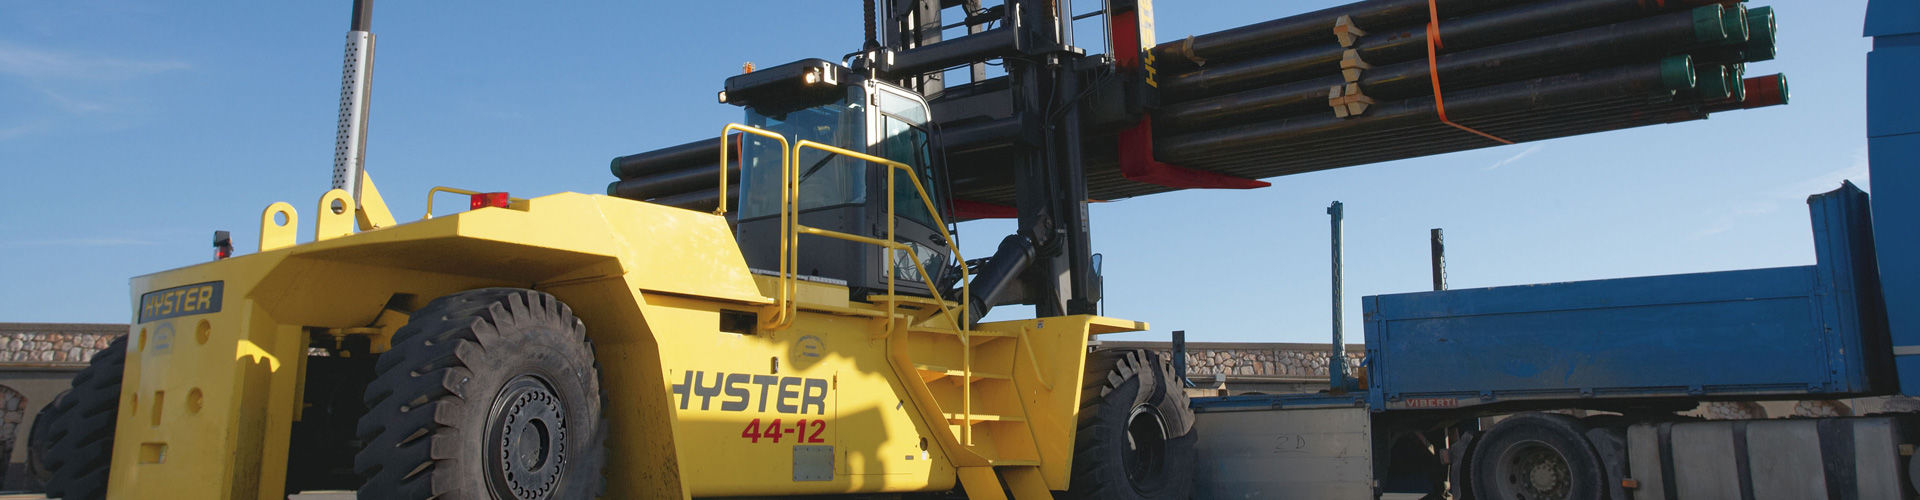 Hyster Forklift Trucks India | Container Handler in India | TIL Limited